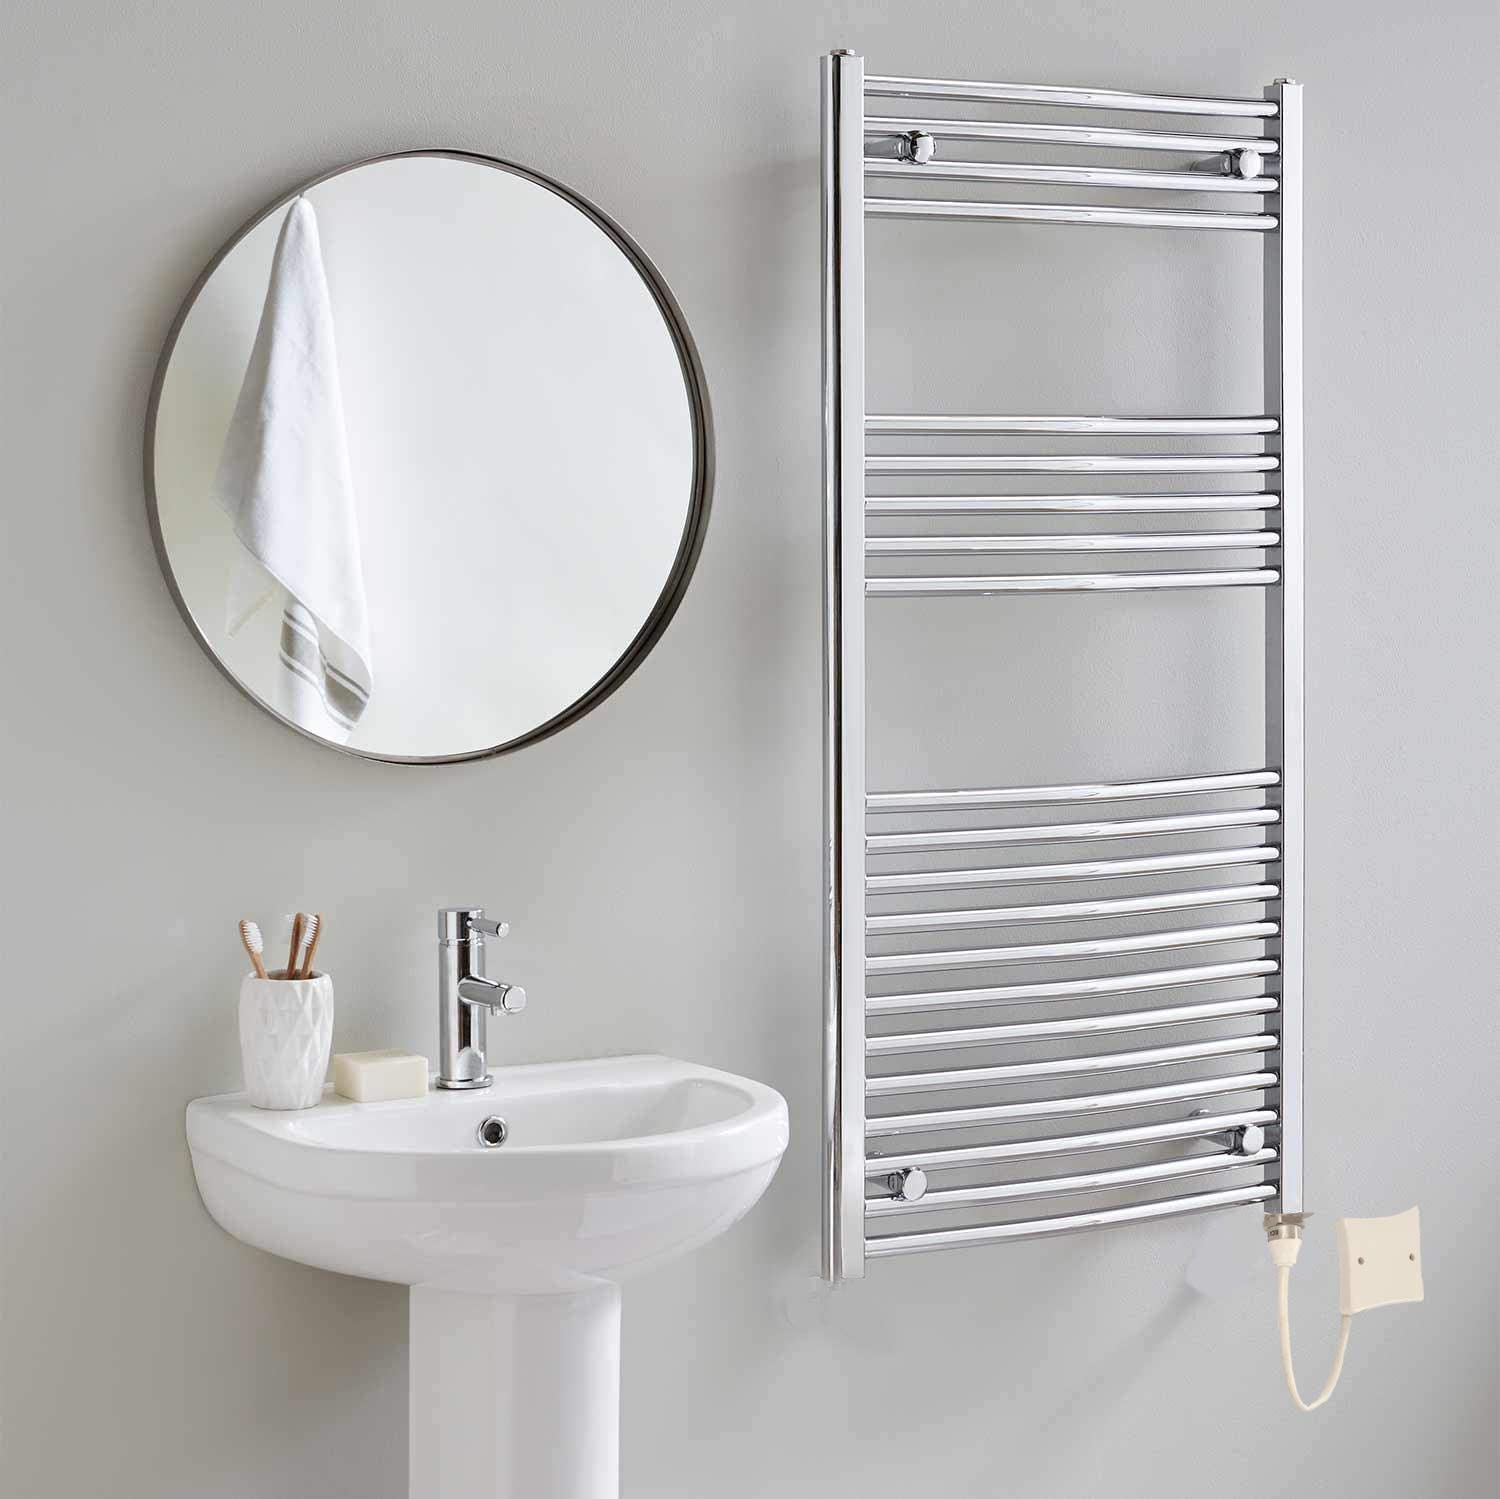 Timer and Room Thermostat Bathroom Towel Rails Greened House Electric Chrome 500W x 800H Flat Towel Rail